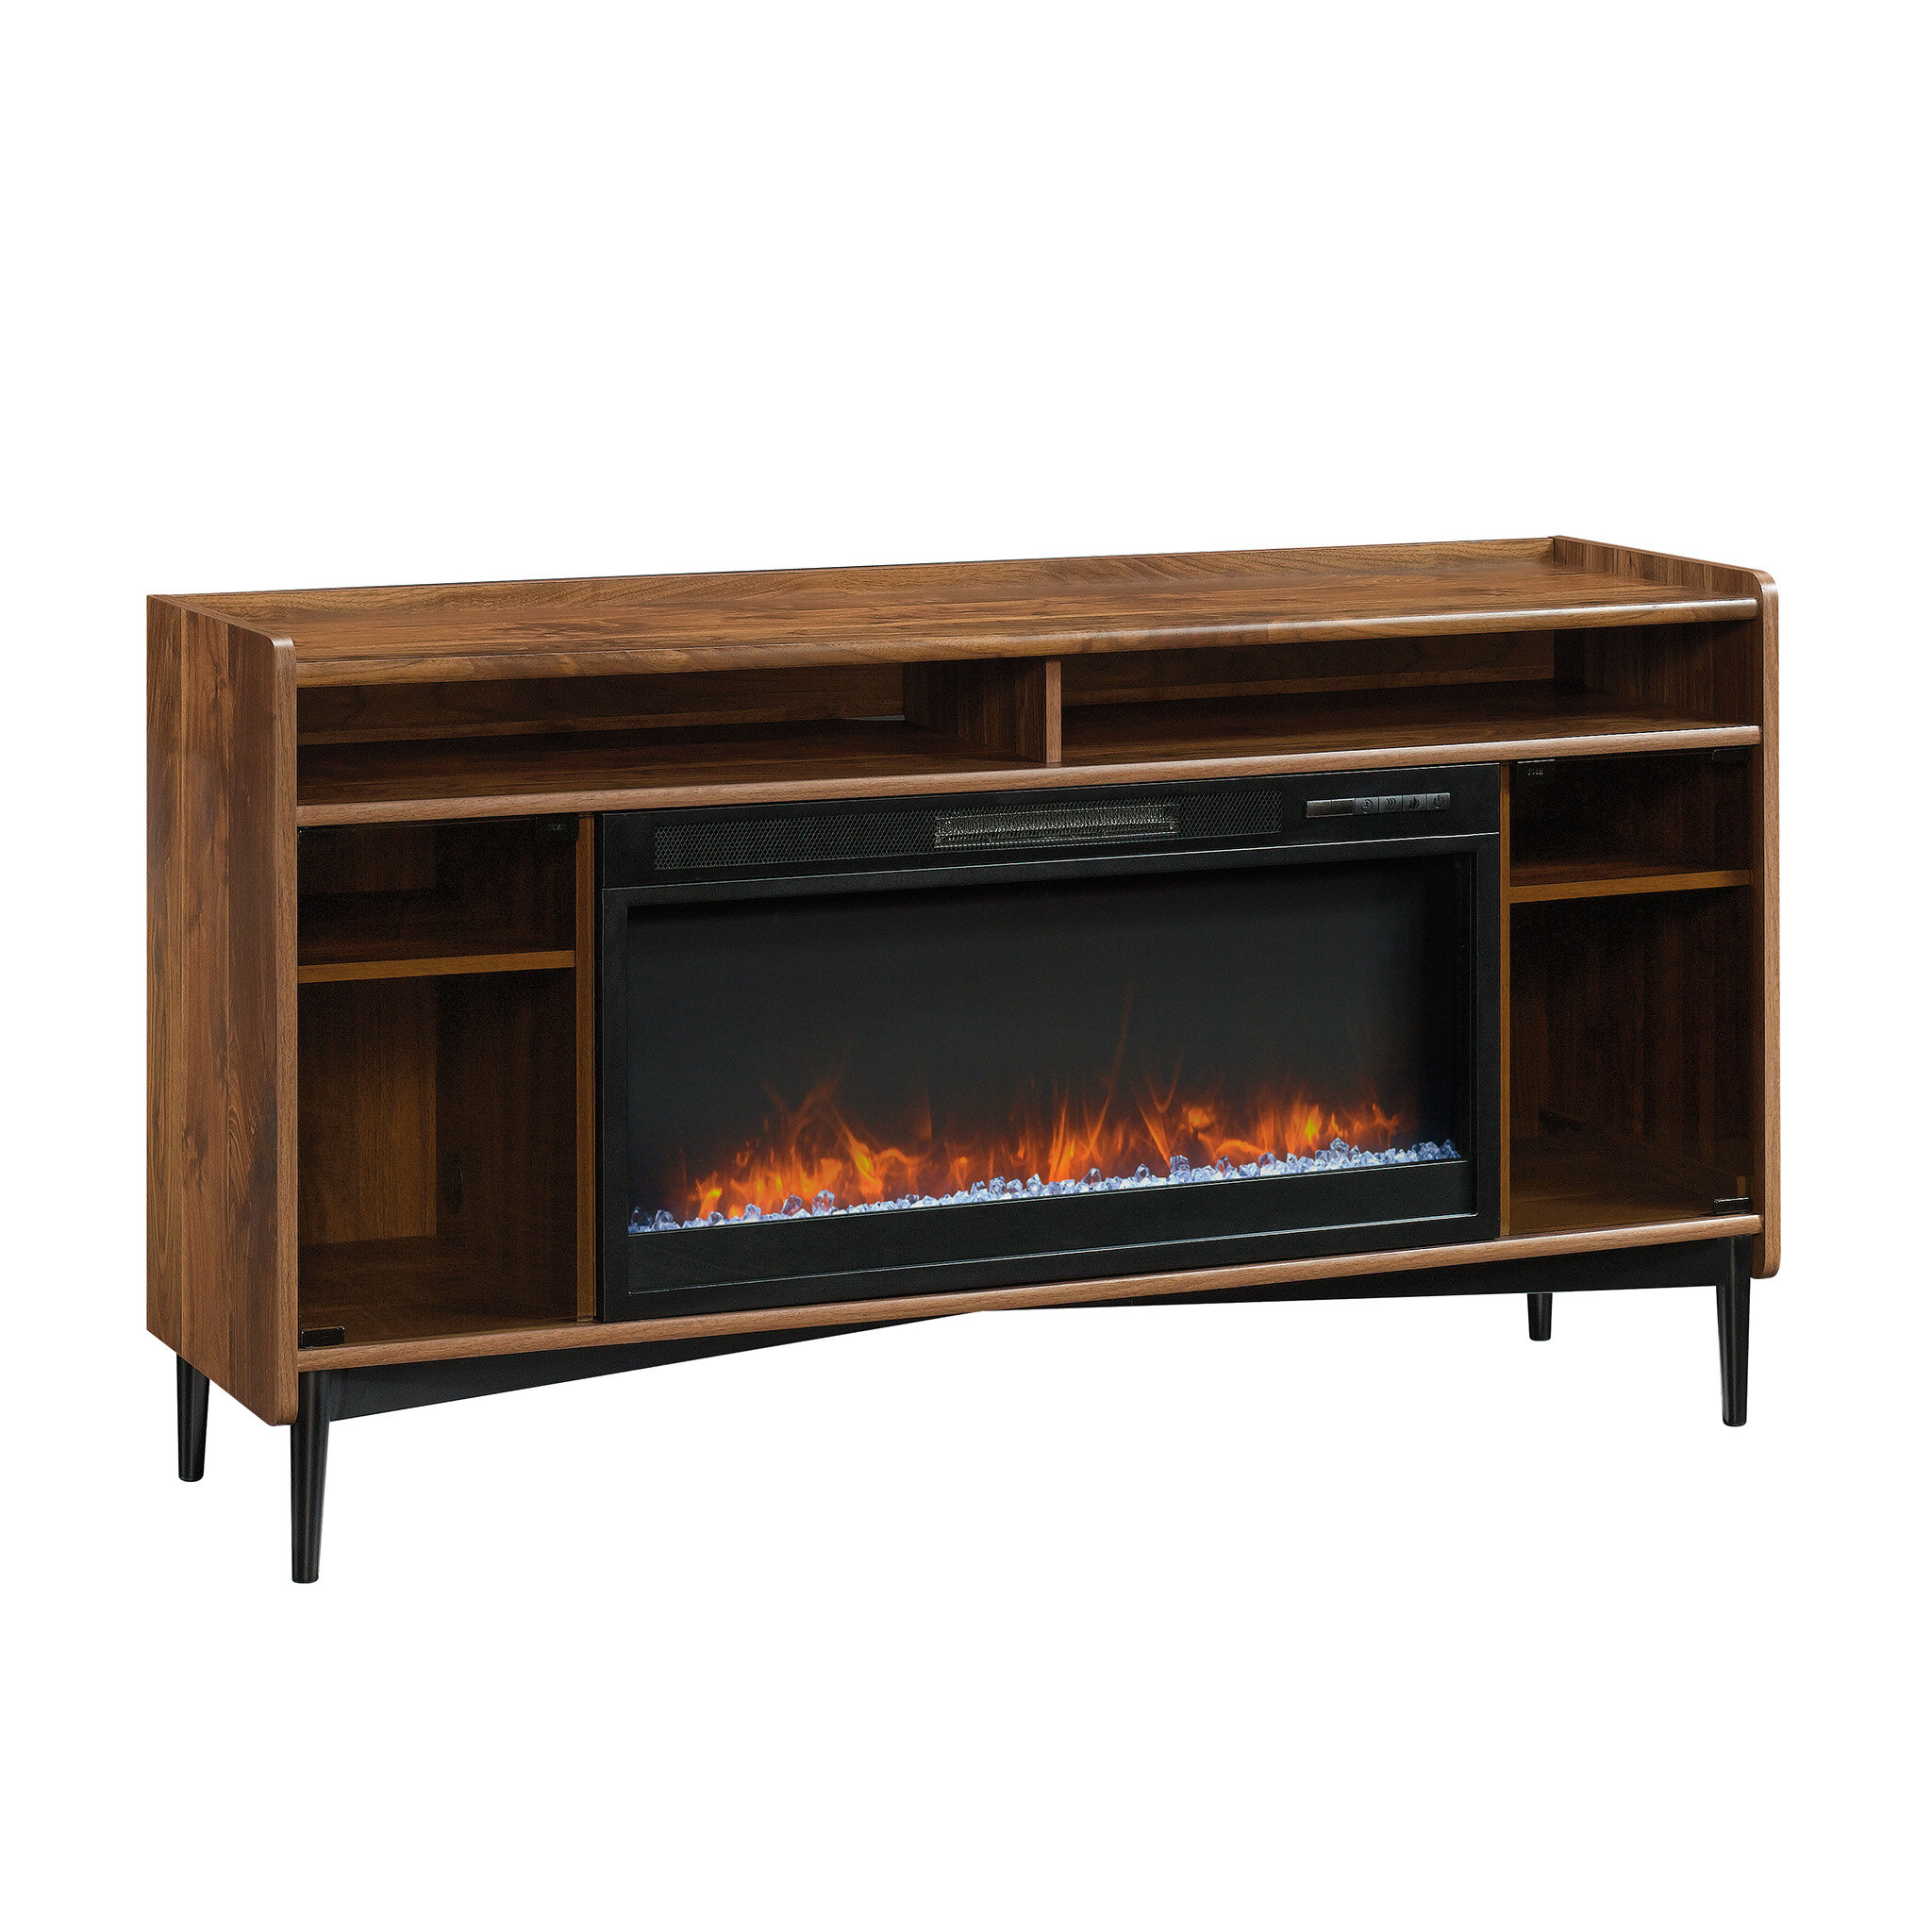 Gutierrez Tv Stand For Tvs Up To 60 With Fireplace Reviews Joss